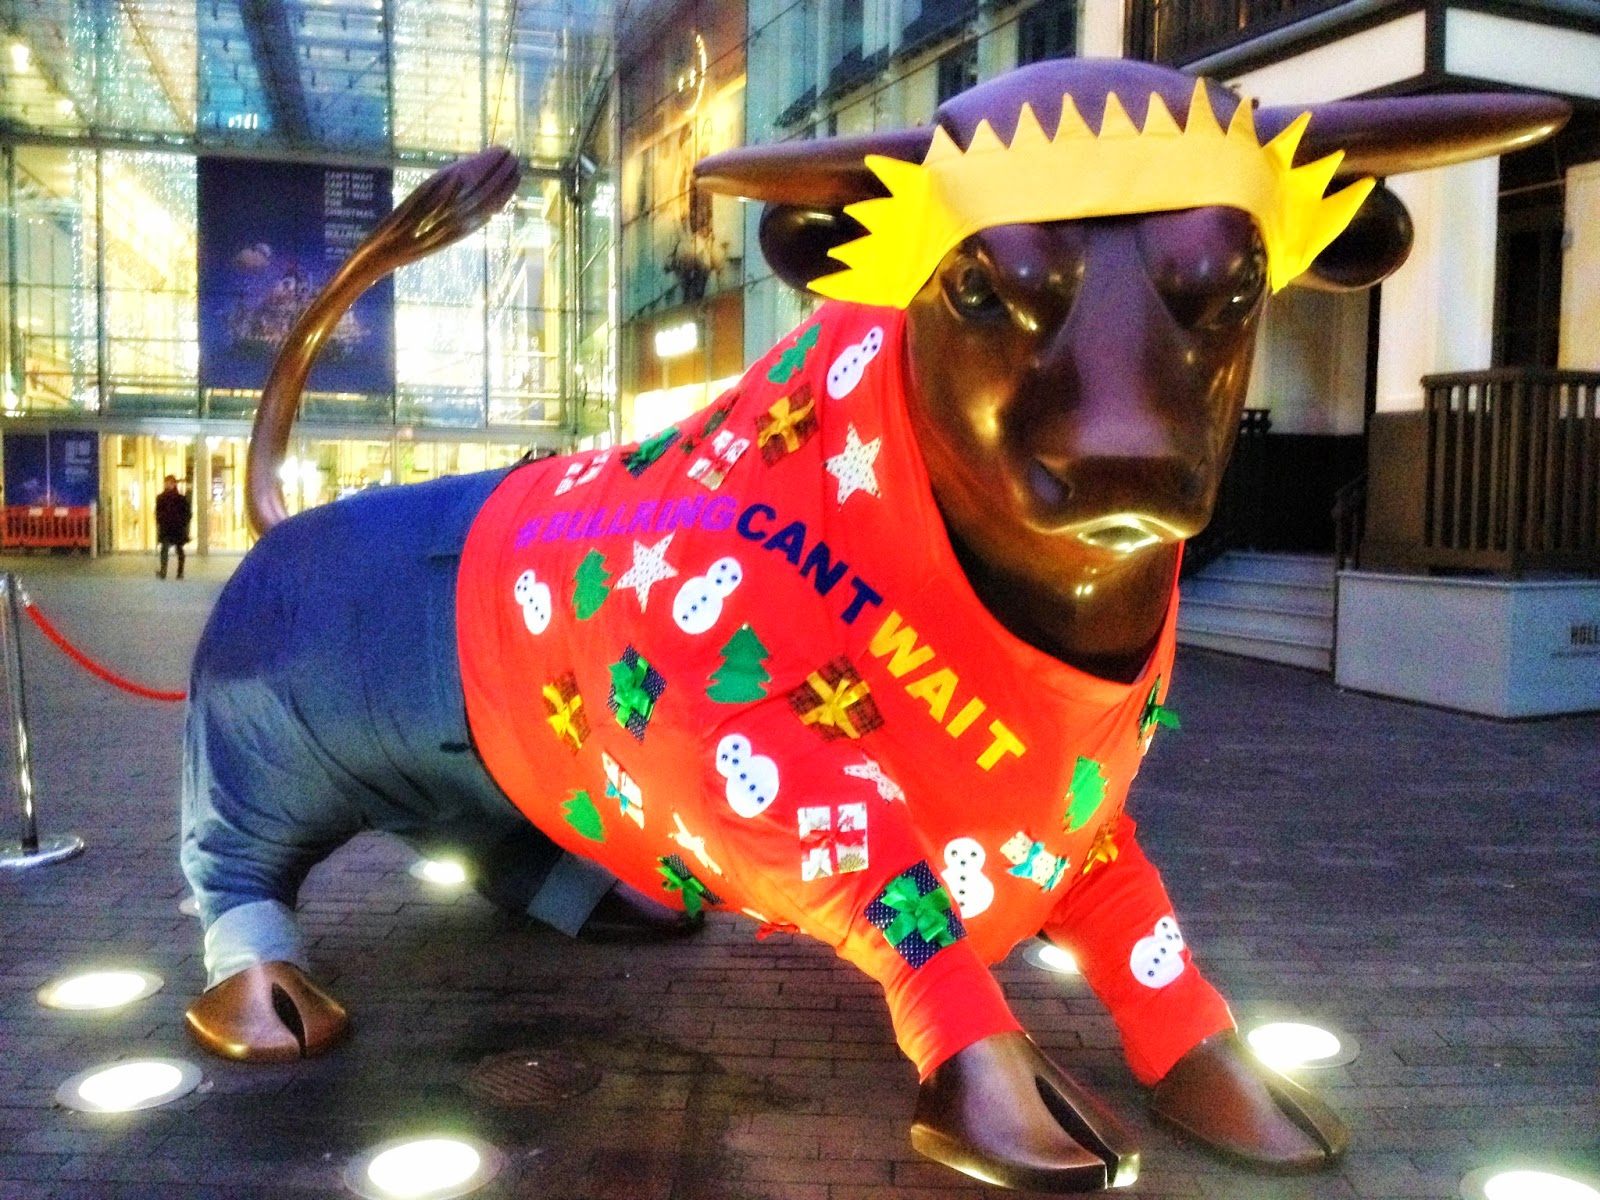 The Bull Birmingham Christmas jumper